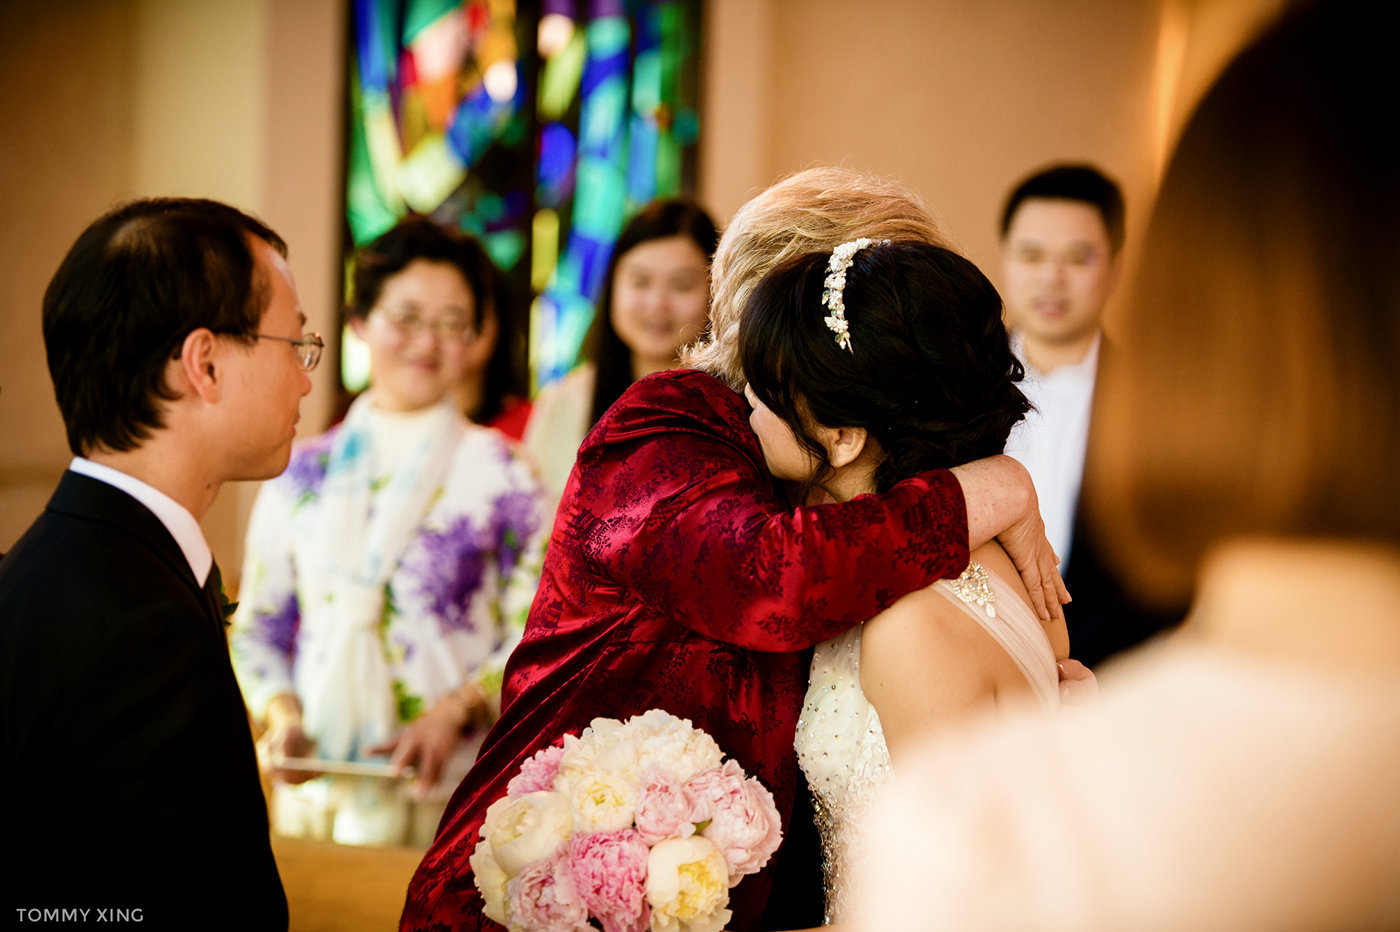 Qinglu Meng & Daozheng Chen Wedding Slideshow-118-E.JPG